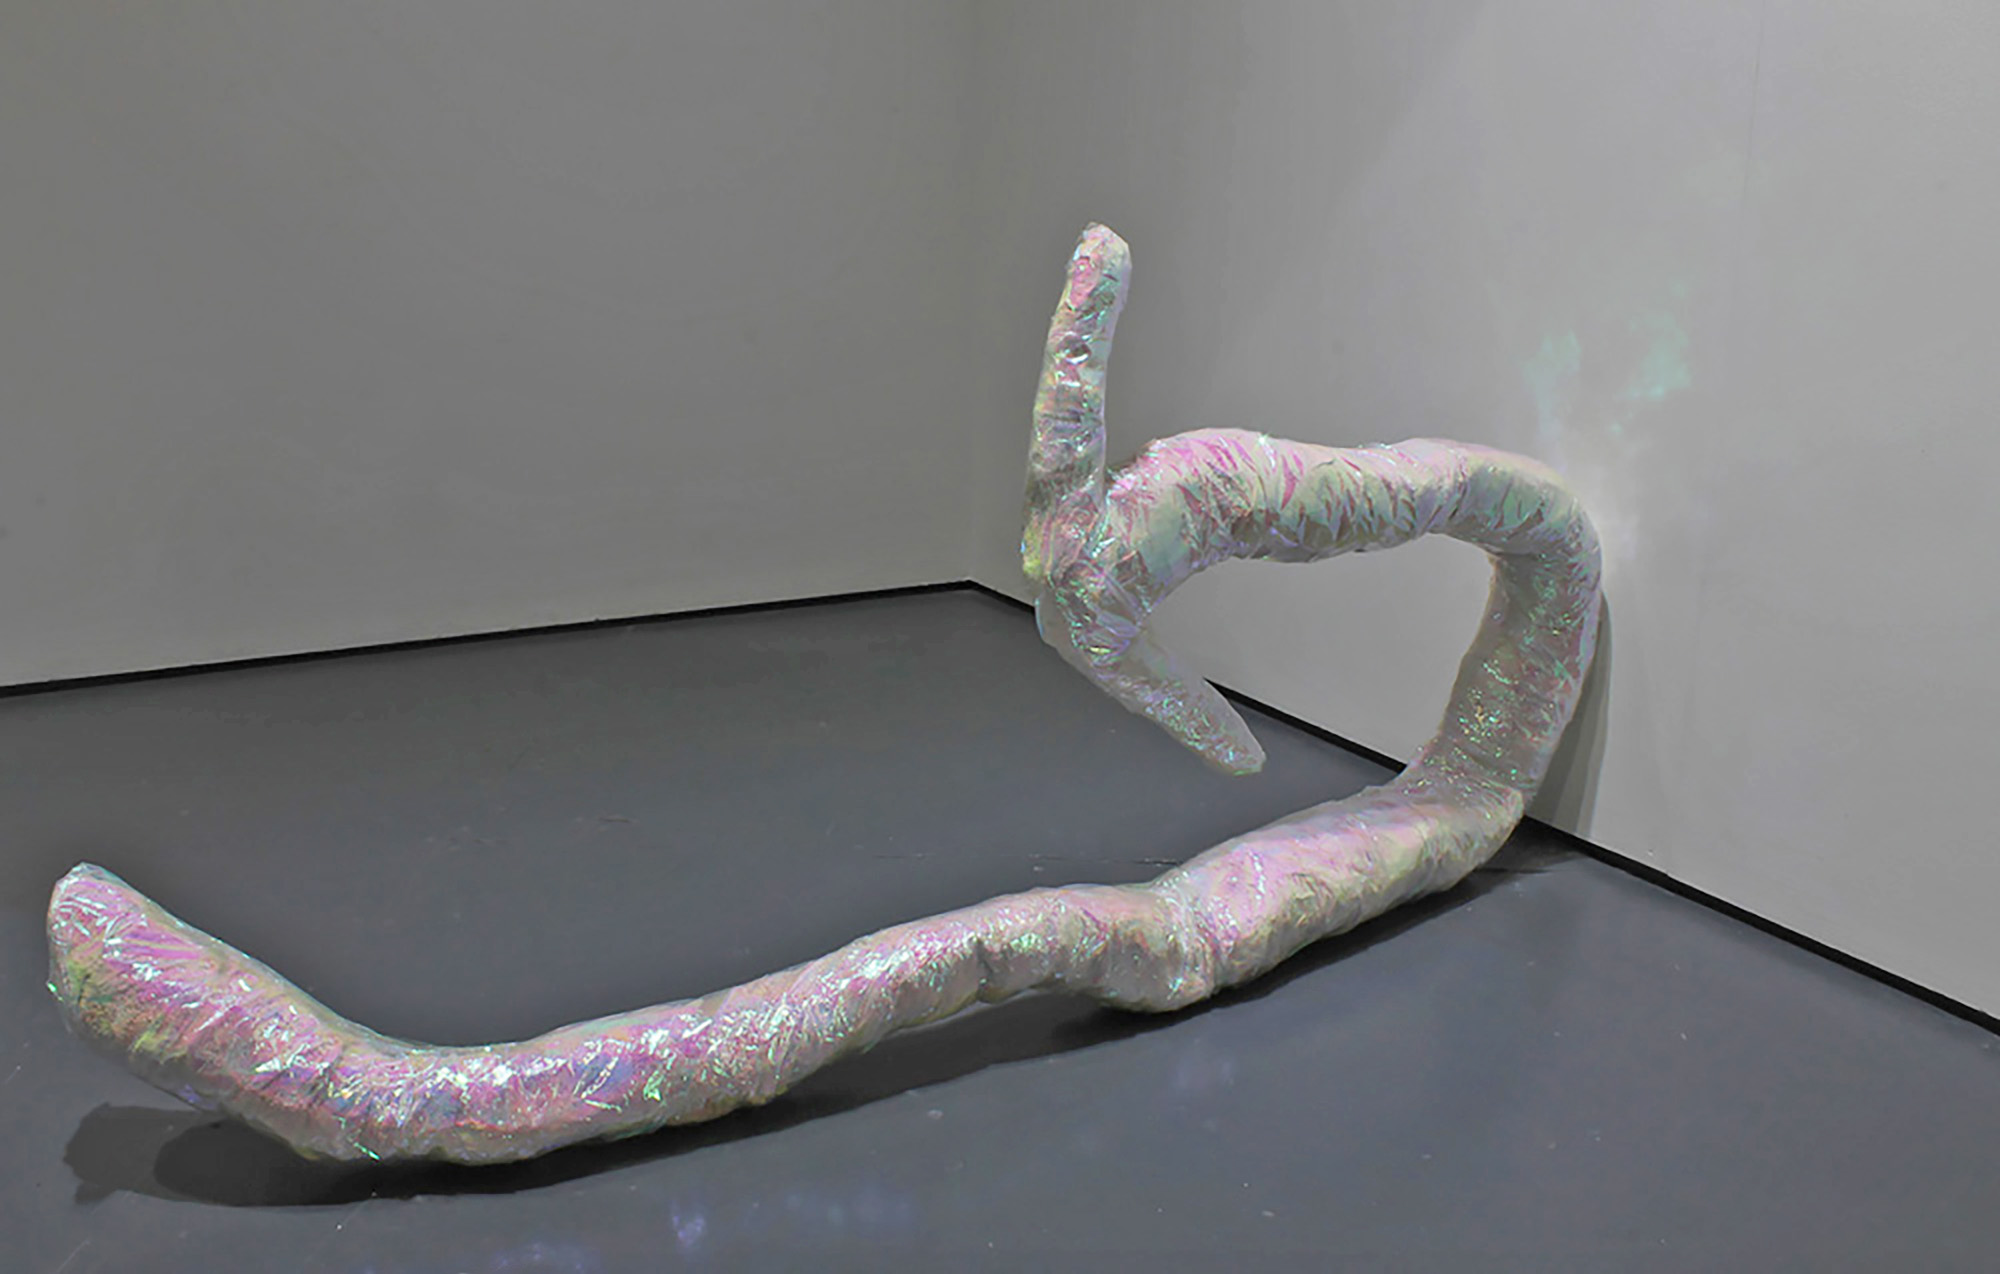 The Internet is That Way | Pippa Eason | 2017 | plaster, metal, iridescent wrapping | dimensions variable | installation view: serf Leeds | image: courtesy of the artist